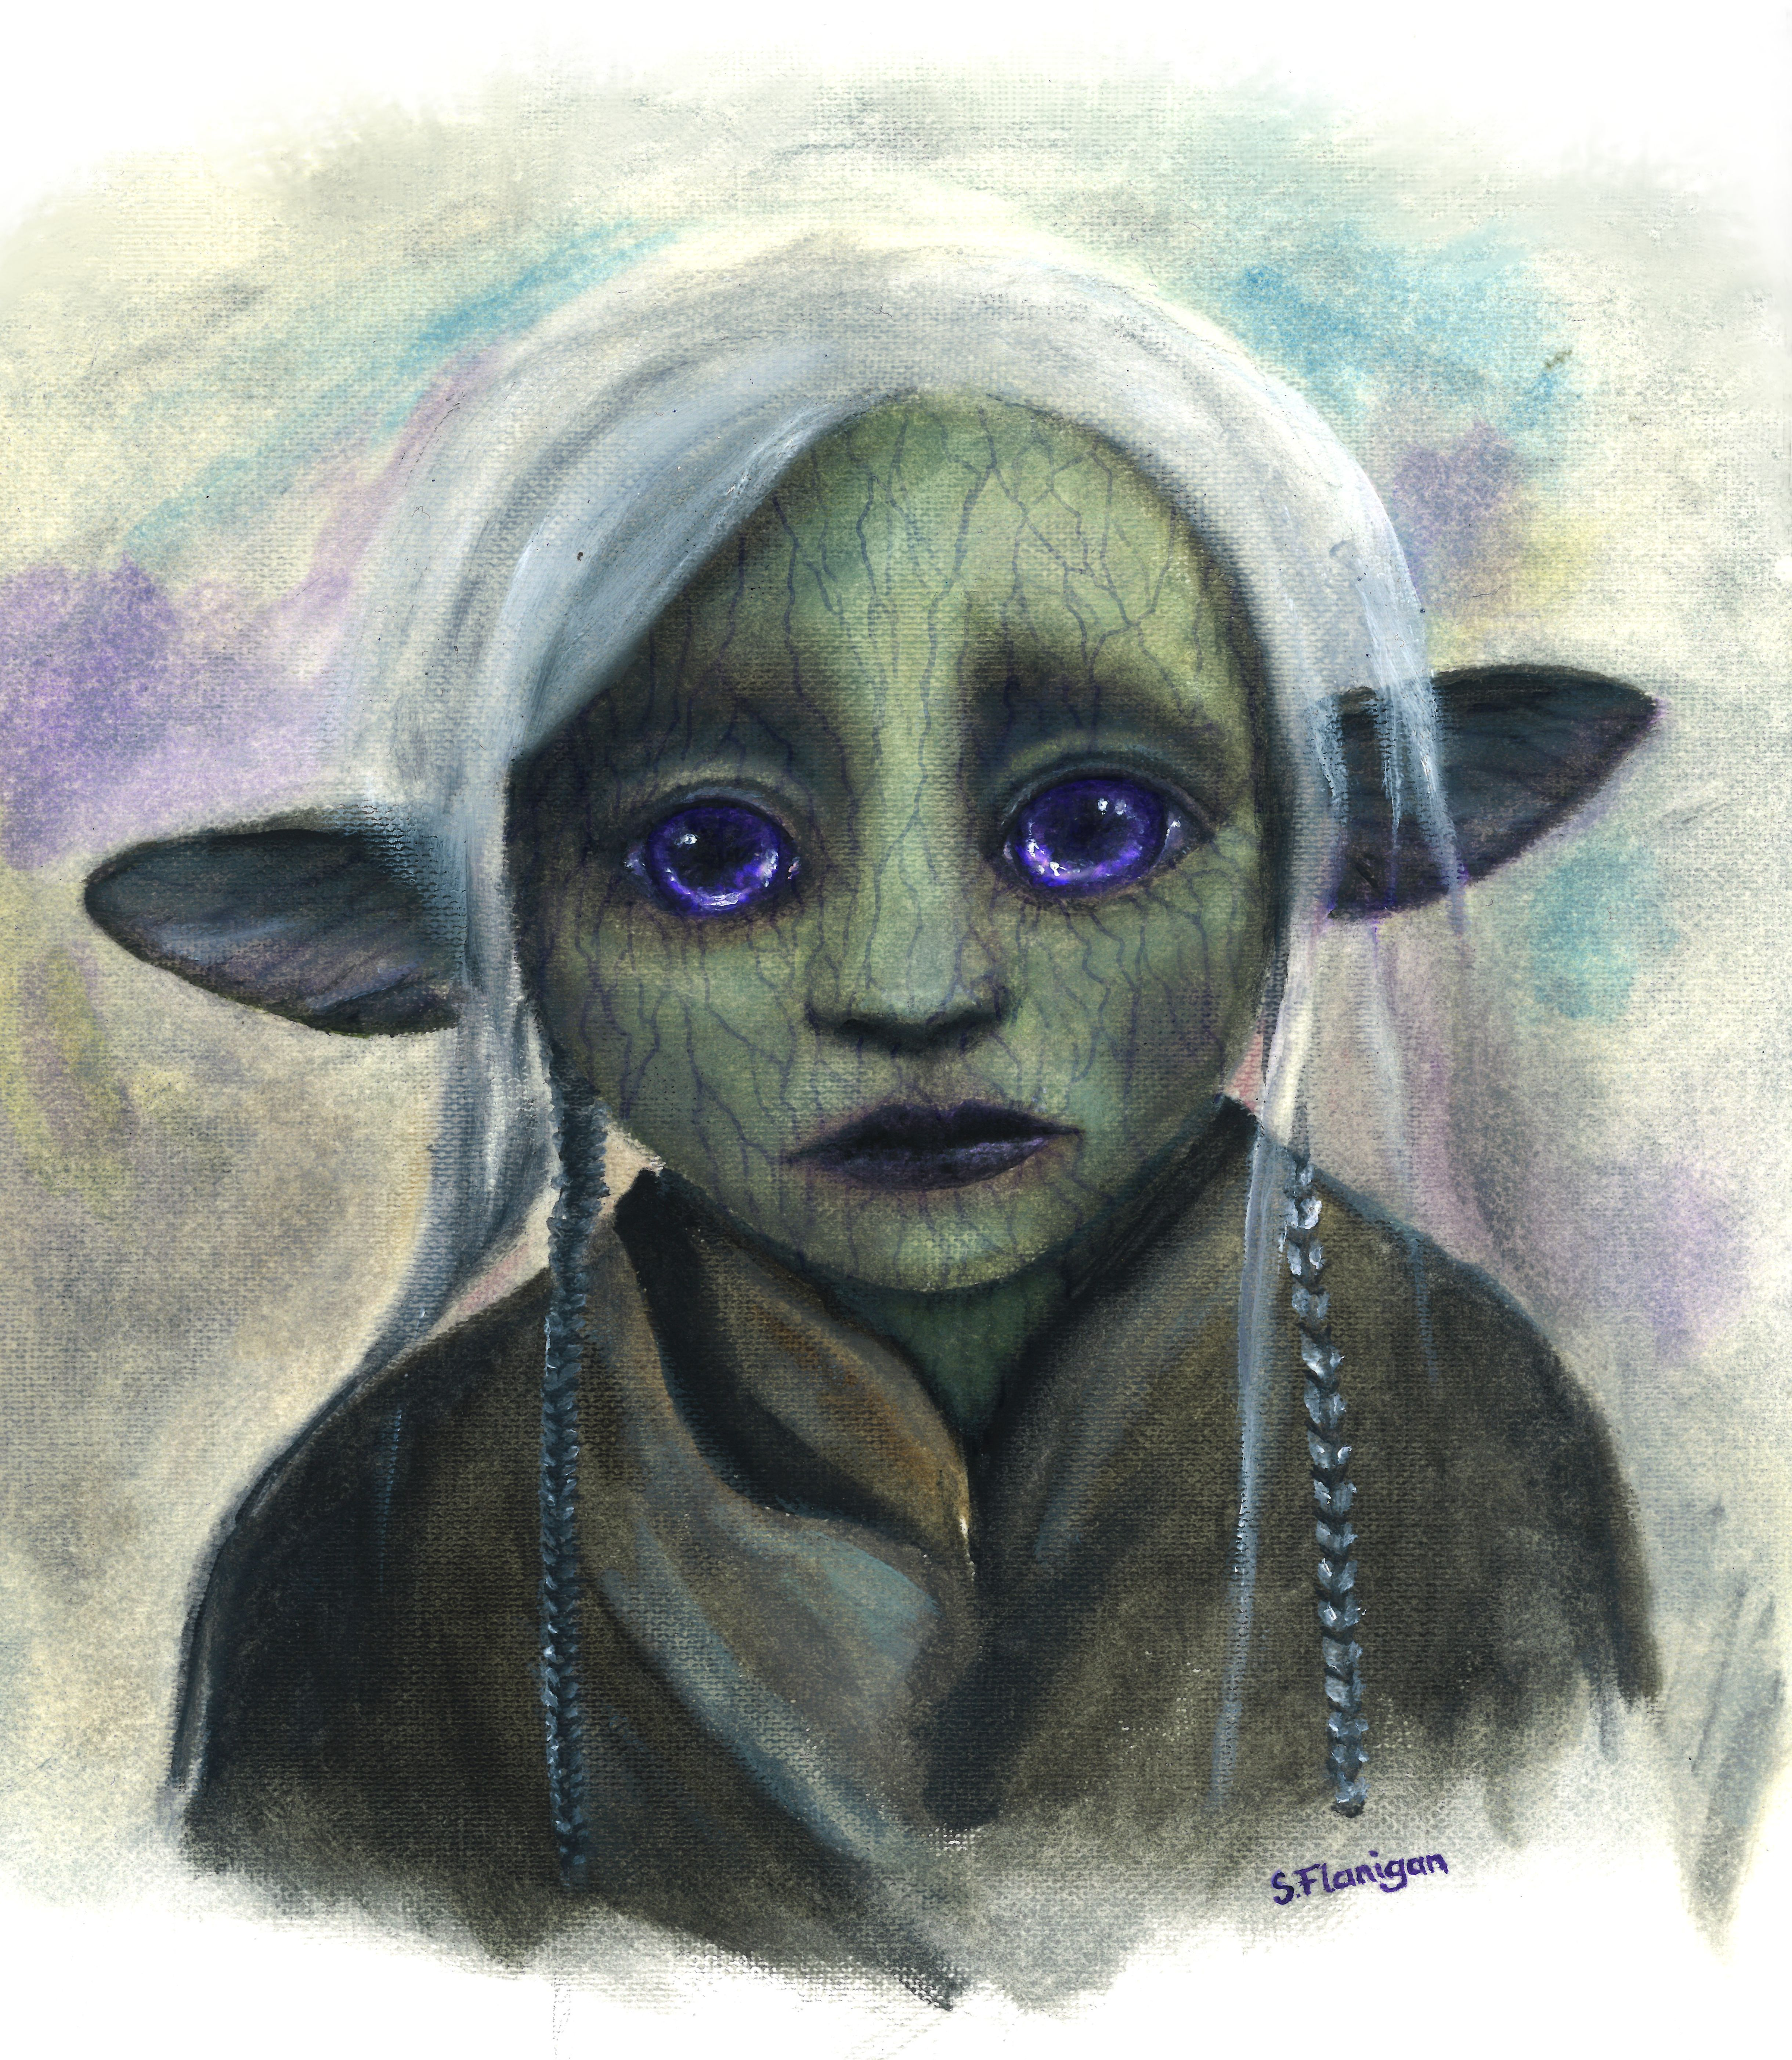 Painting of a gelfling doll (round green face, bright purple eyes, silver hair), in calm despair